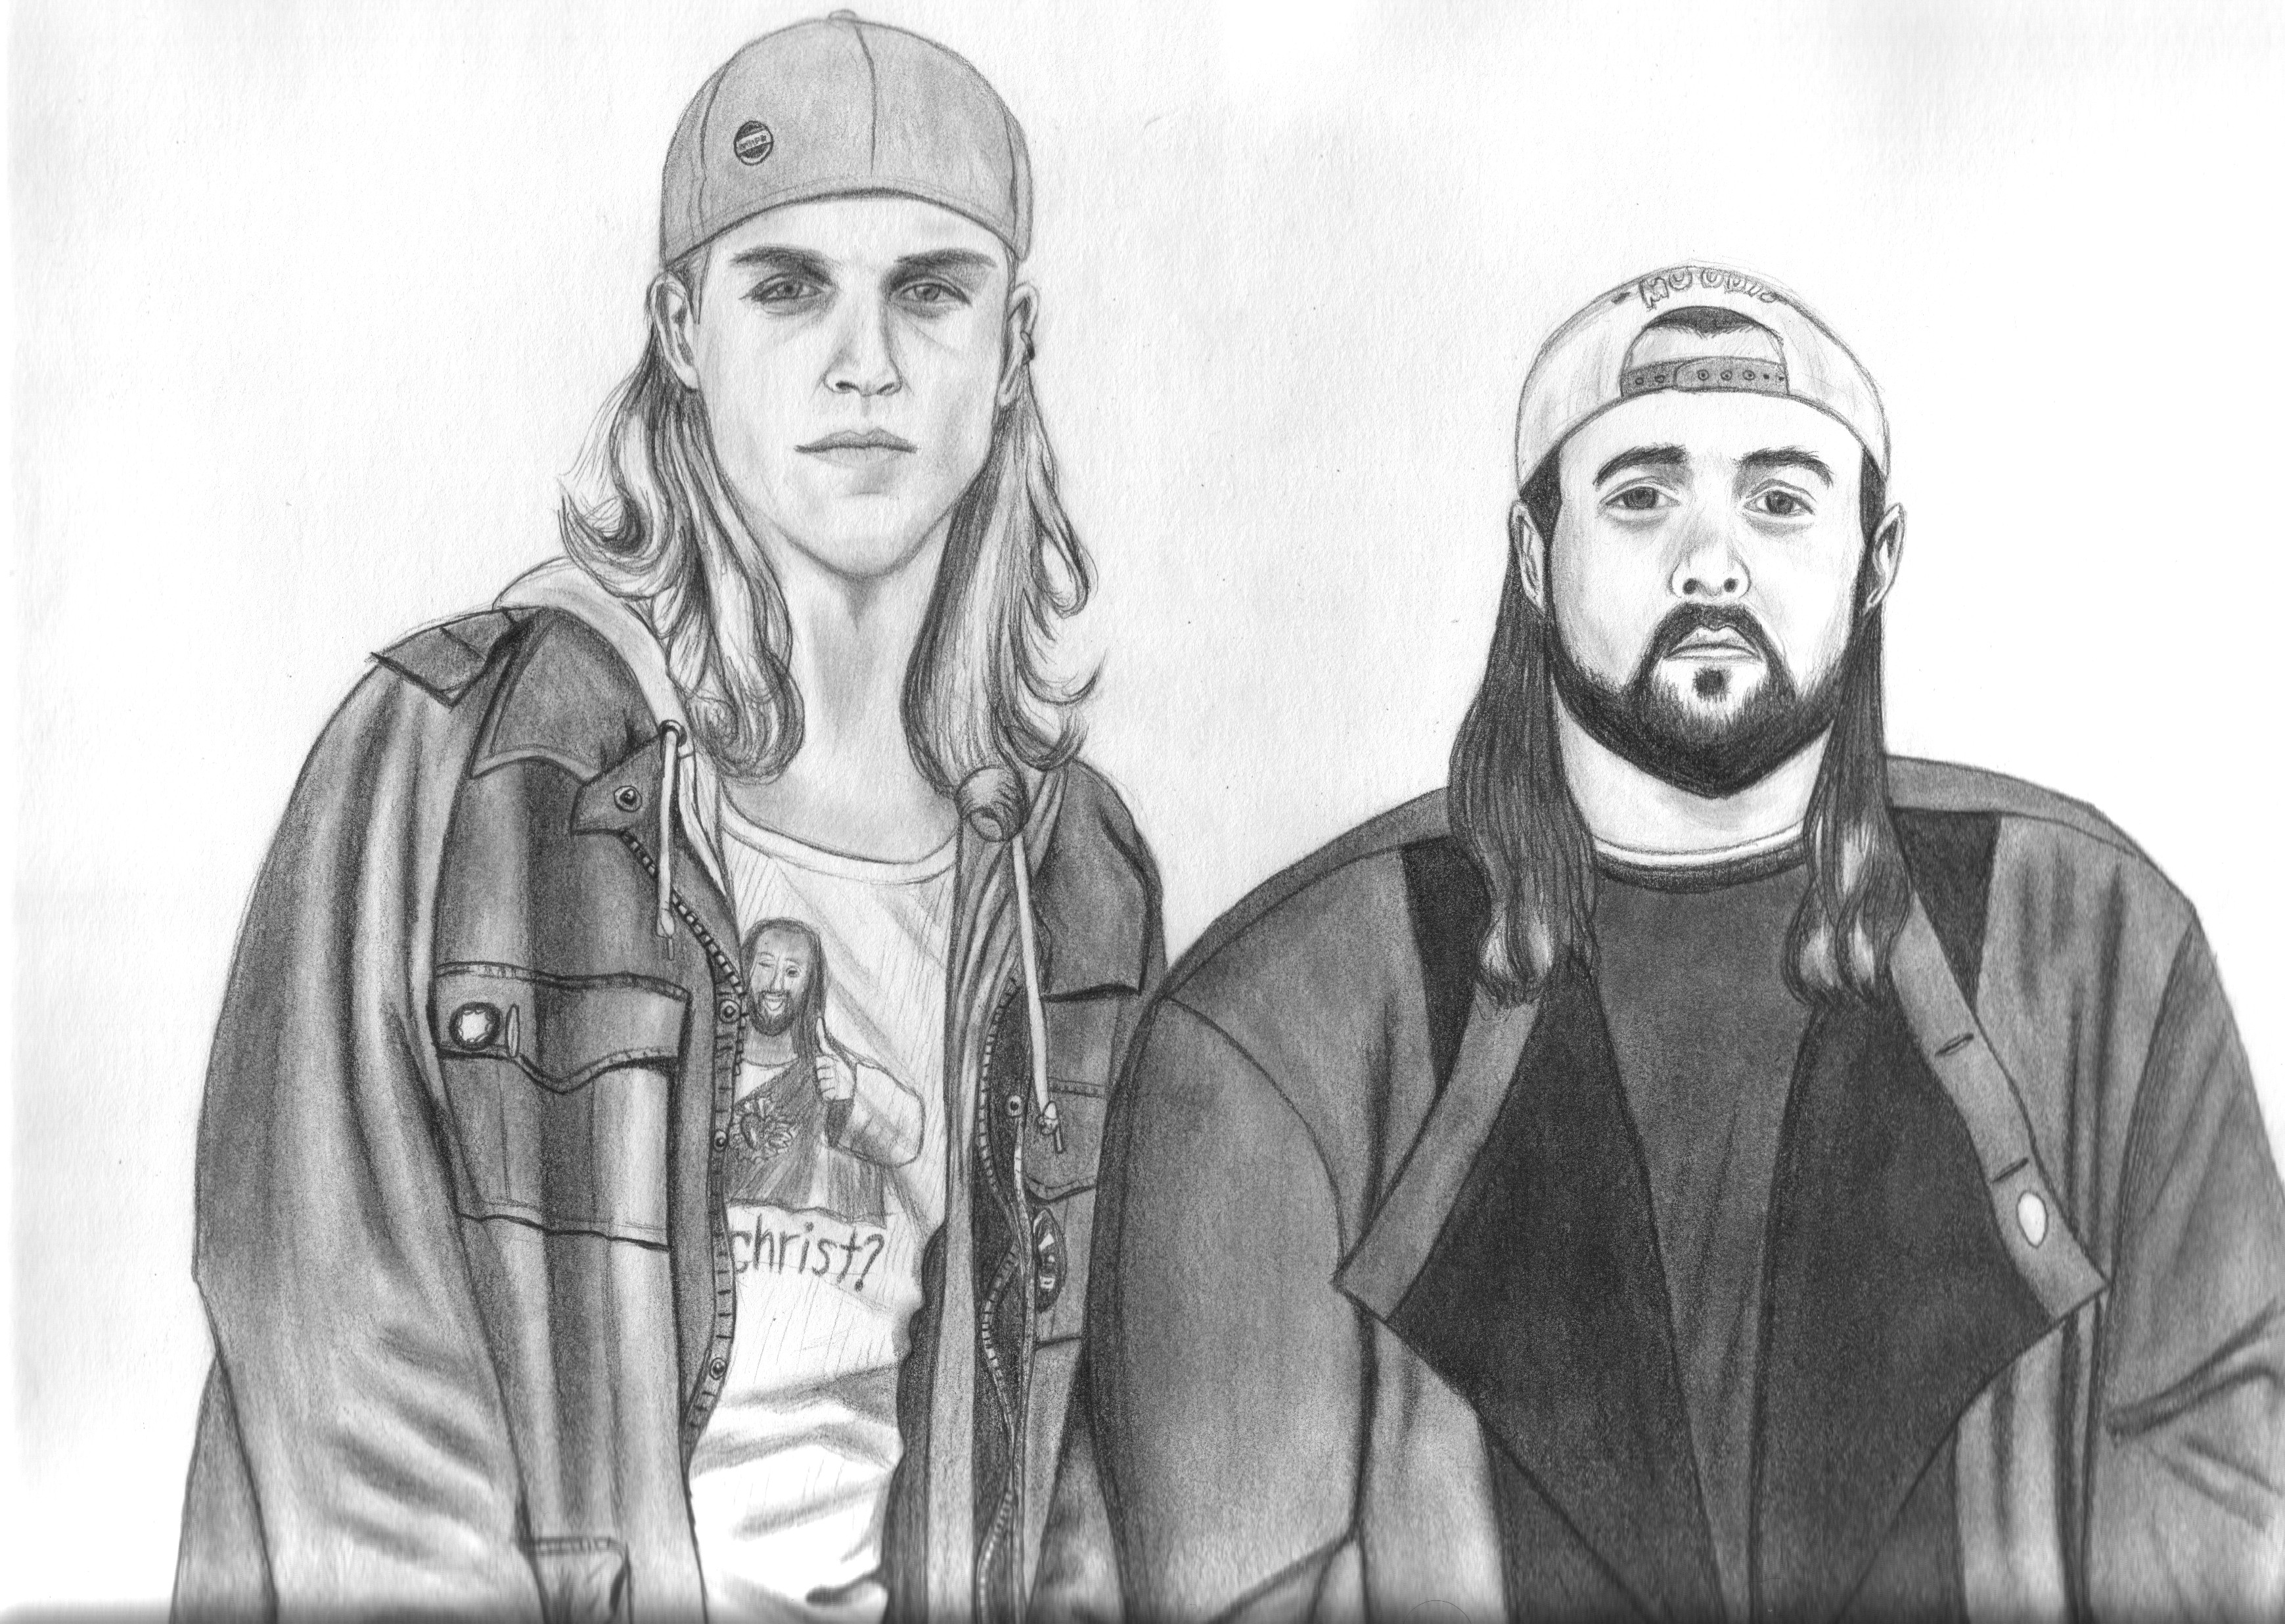 30 Creative Jay And Silent Bob Wallpapers In High Quality Aku Broddle